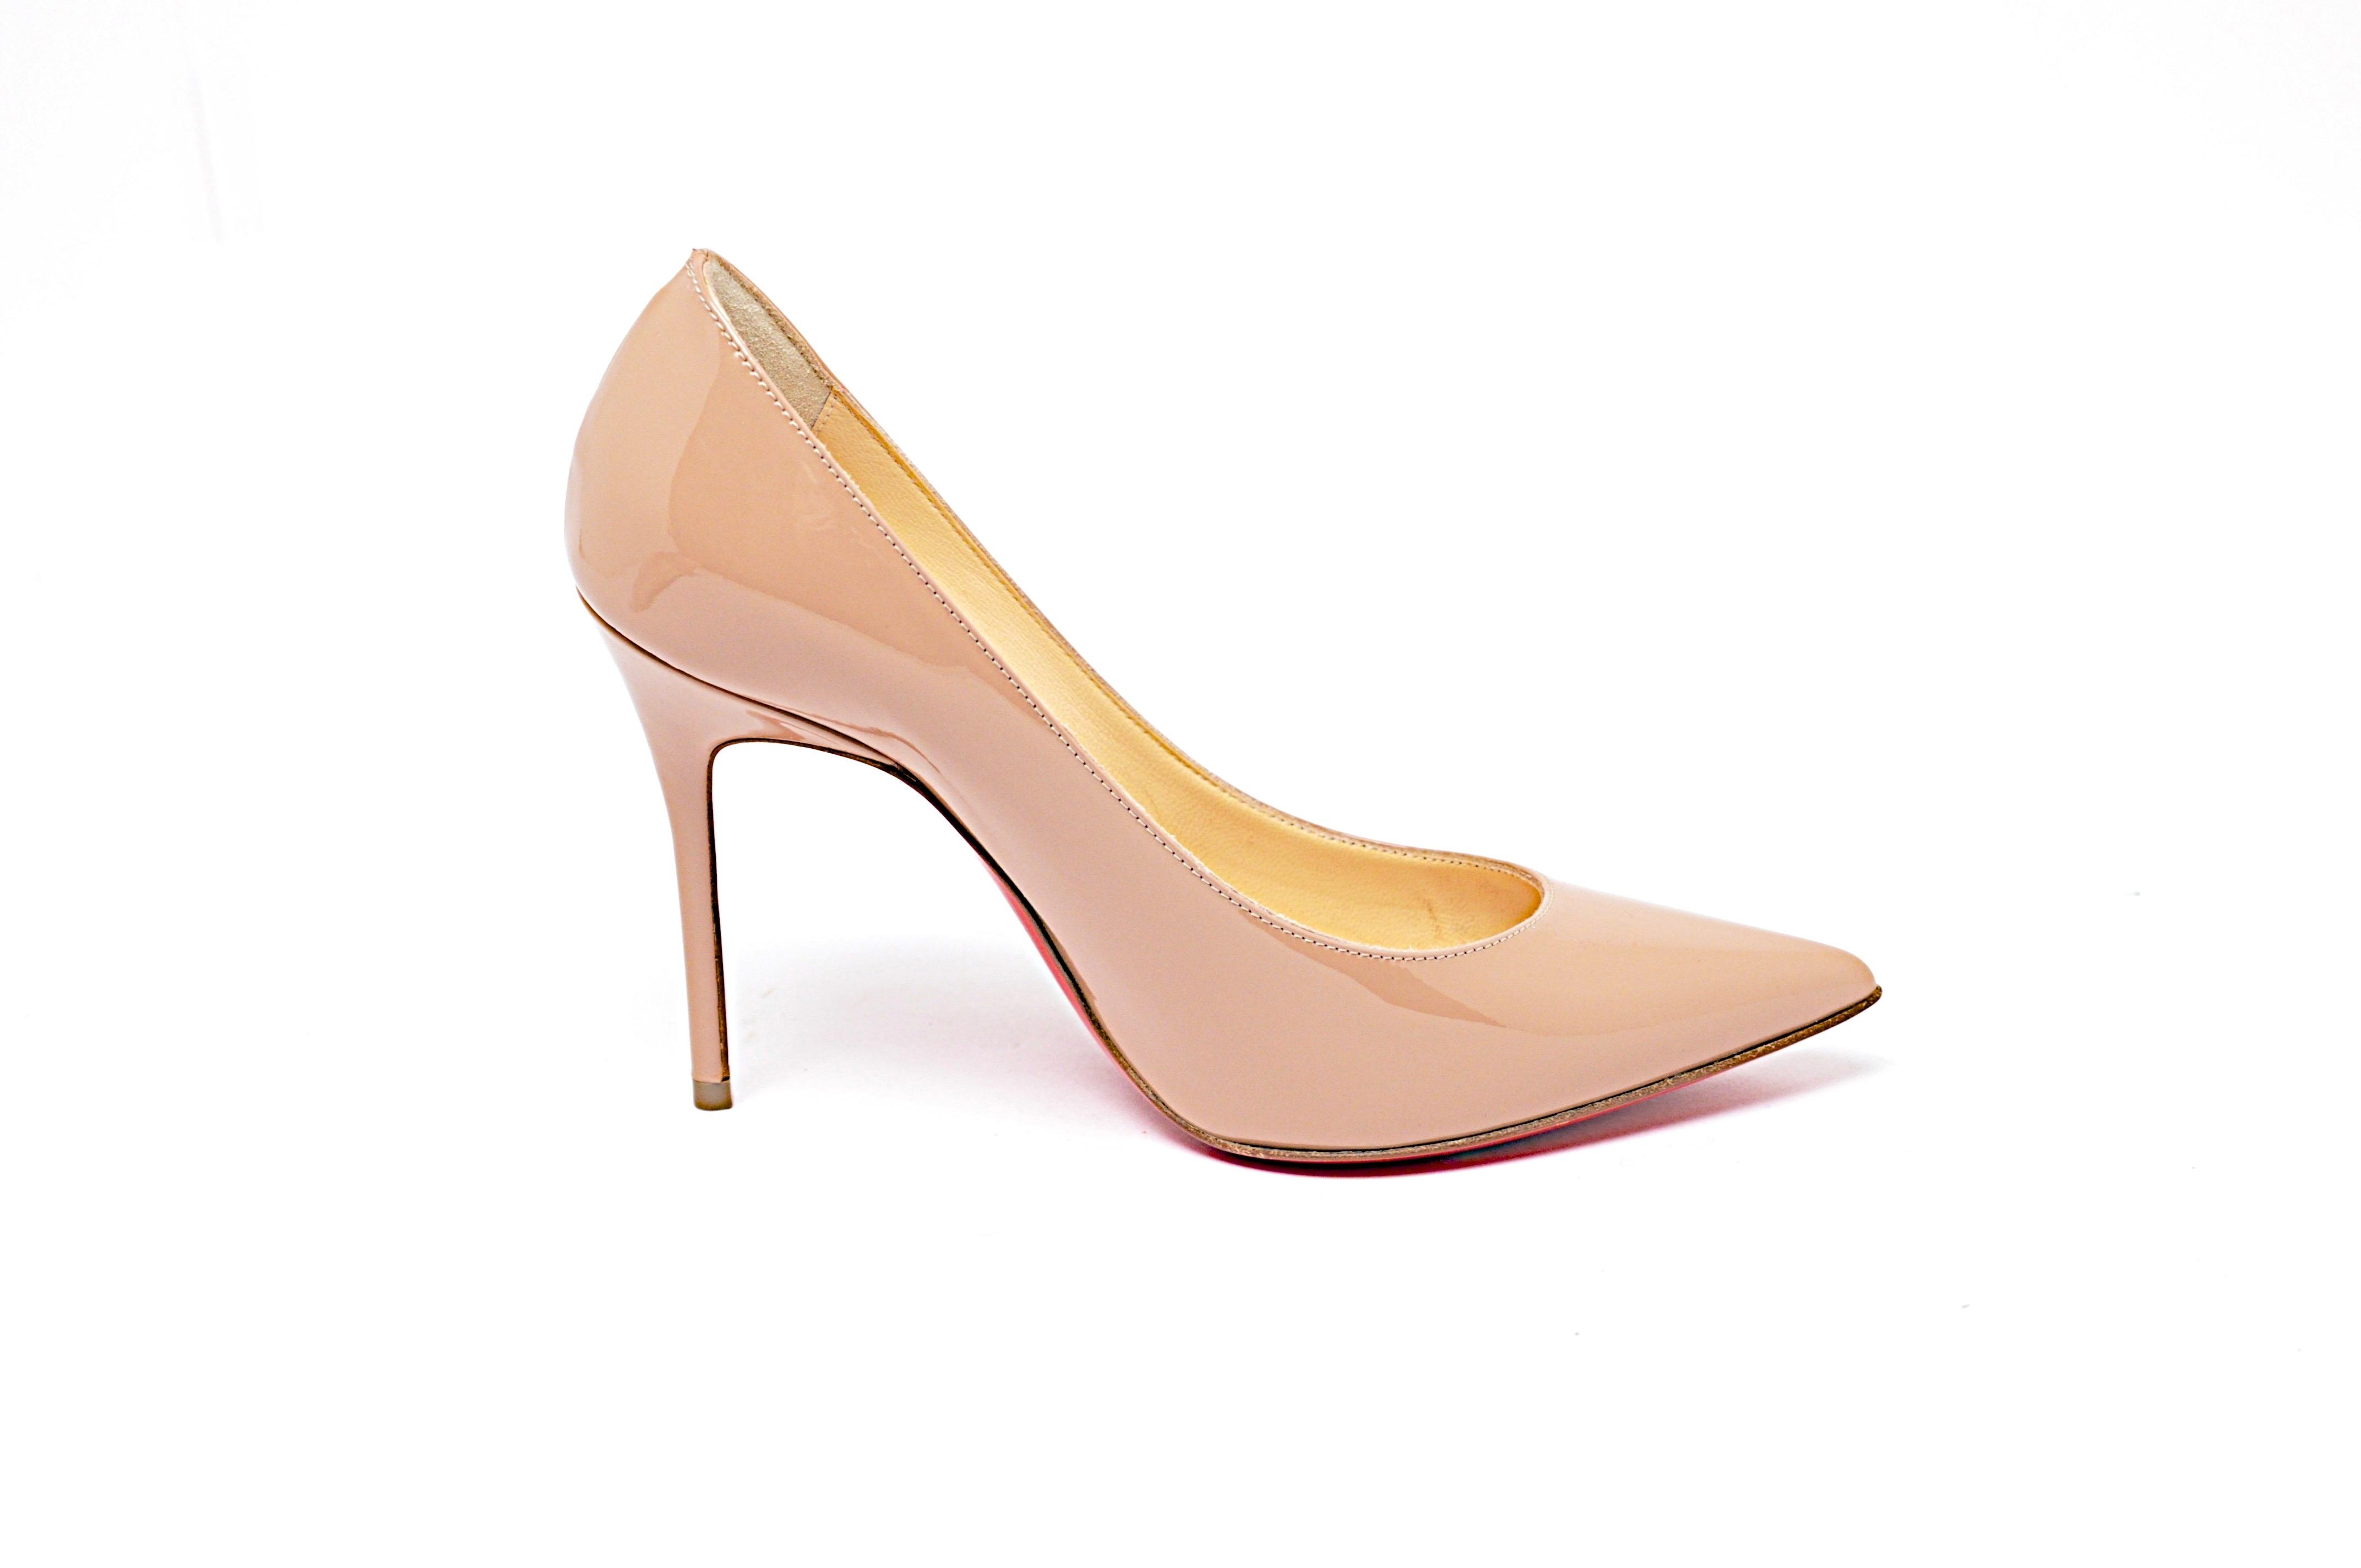 Christian Louboutin Nude Decollet Patent Leather Pointed Toe 3.75 Pumps Size EU 34 (Approx. US 4) Regular (M, B)